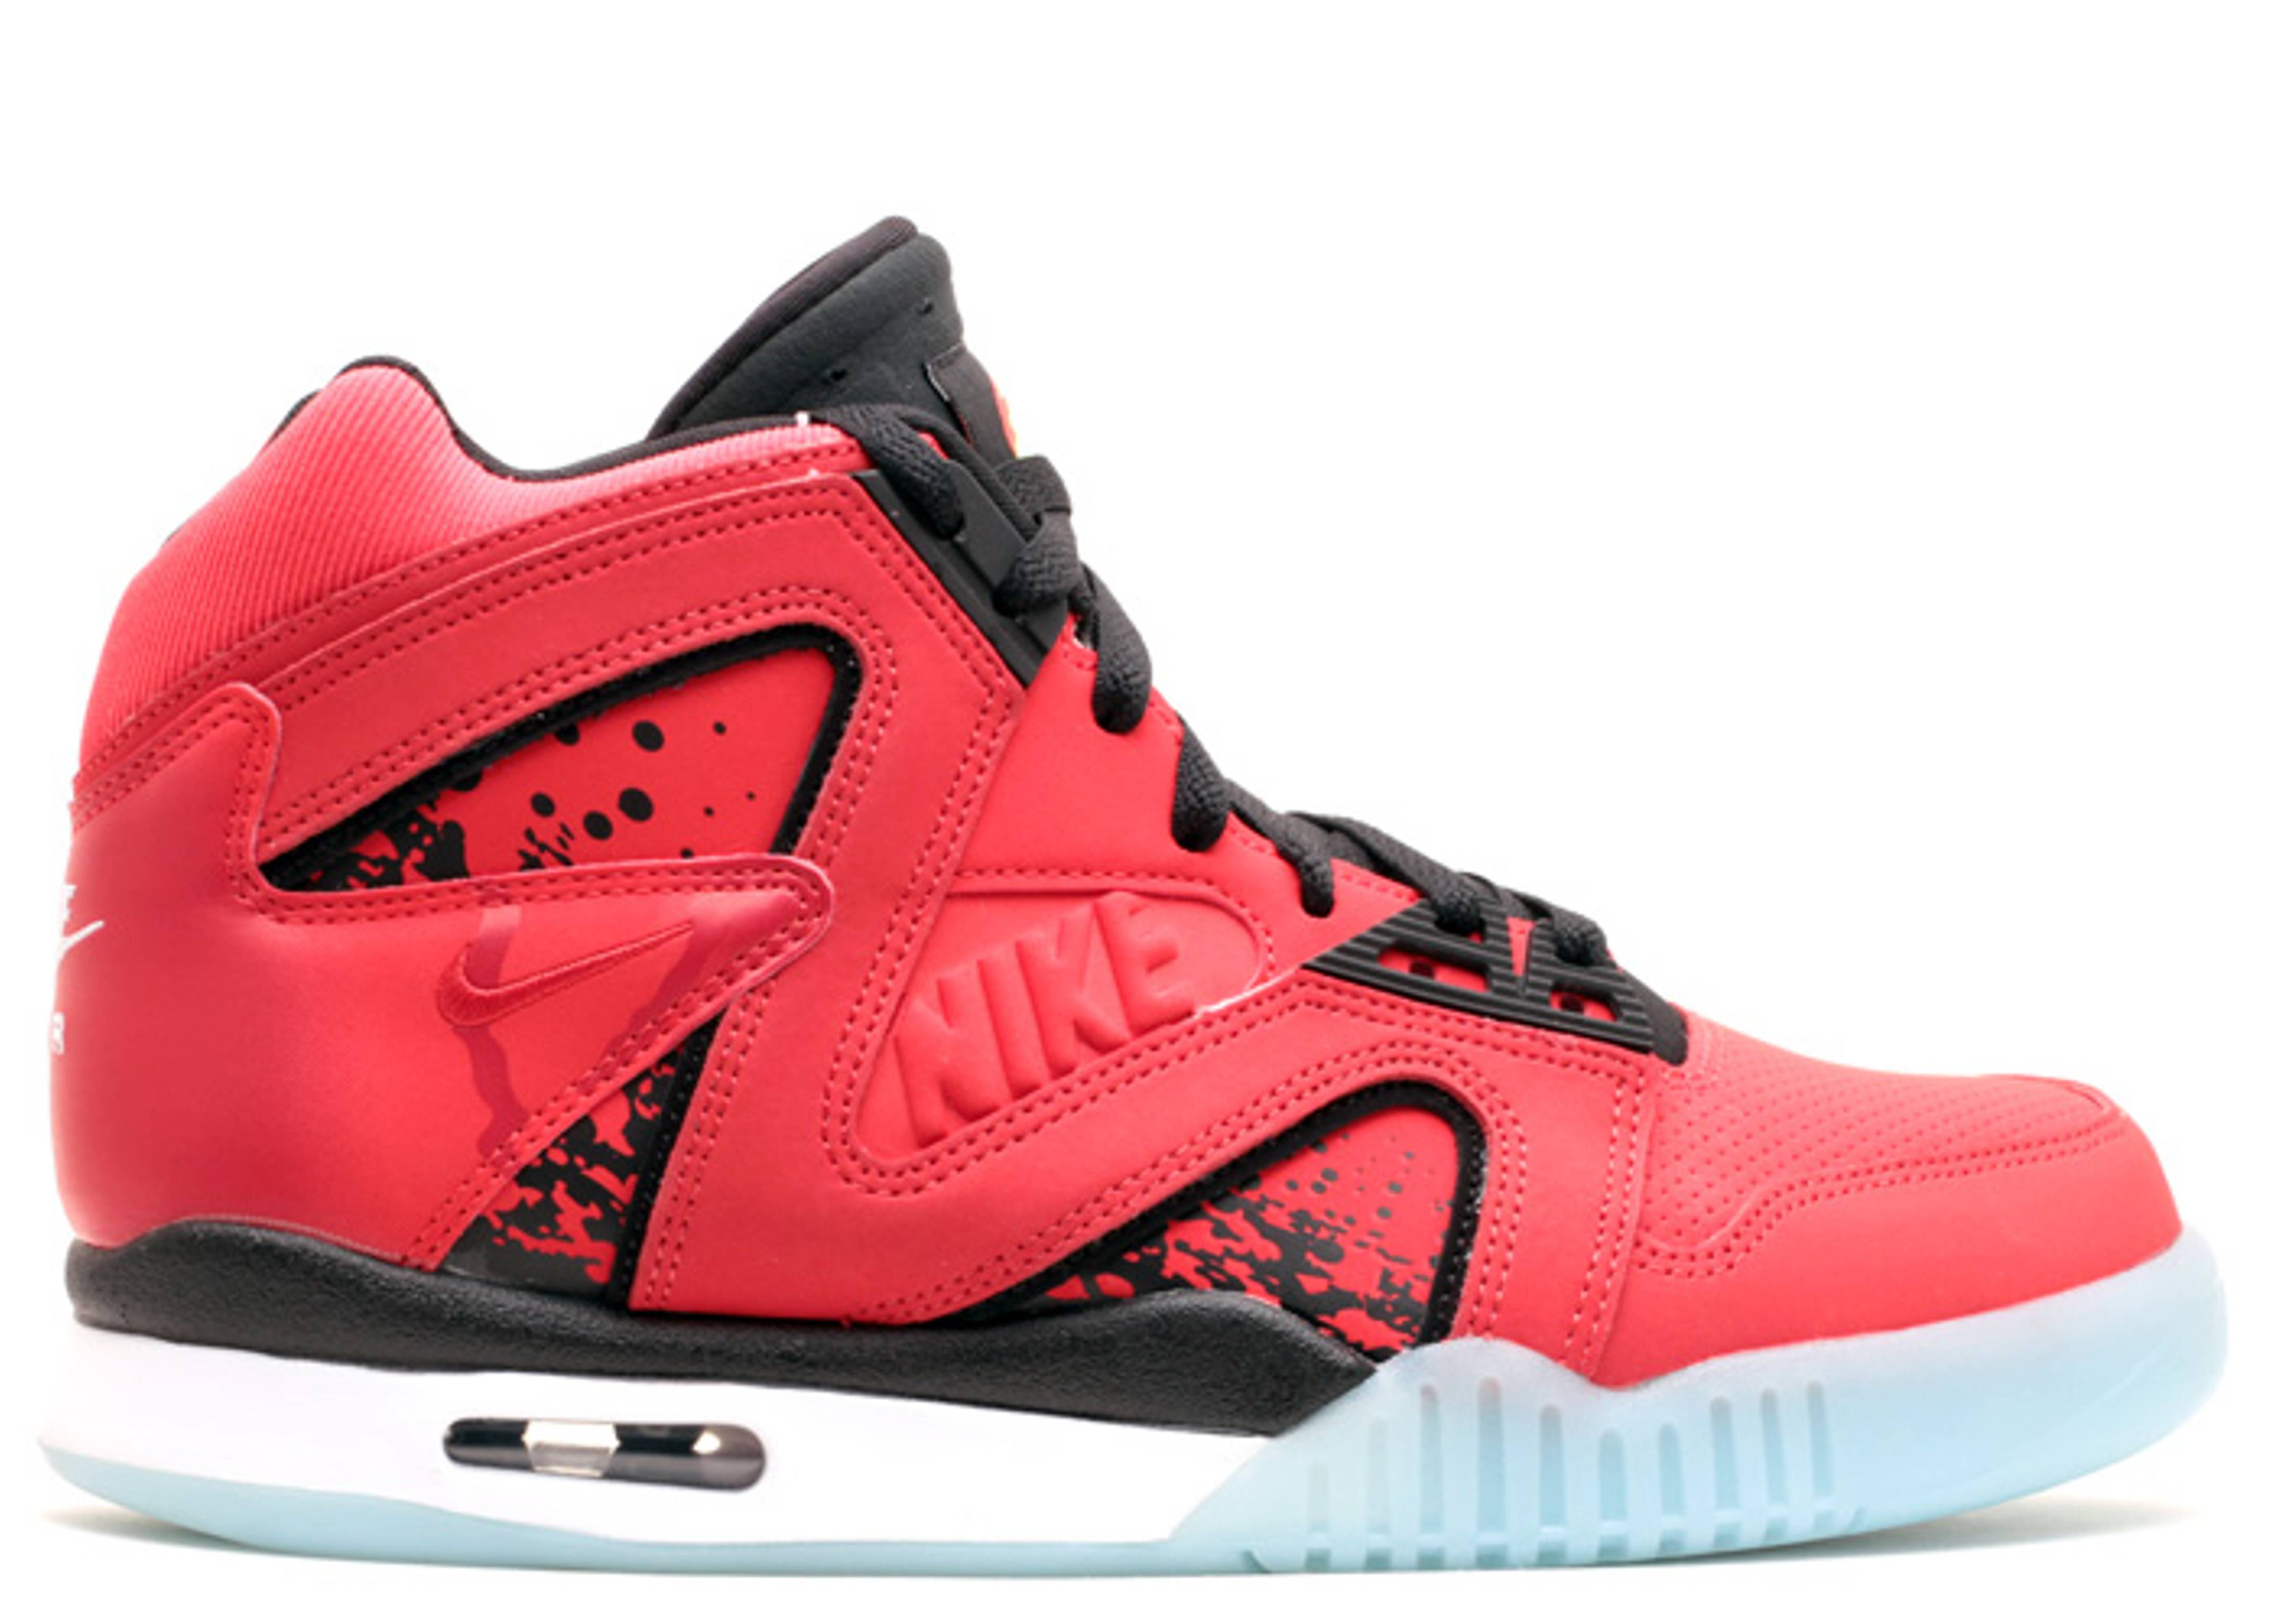 buy popular 2afc5 0a148 air tech challenge hybrid